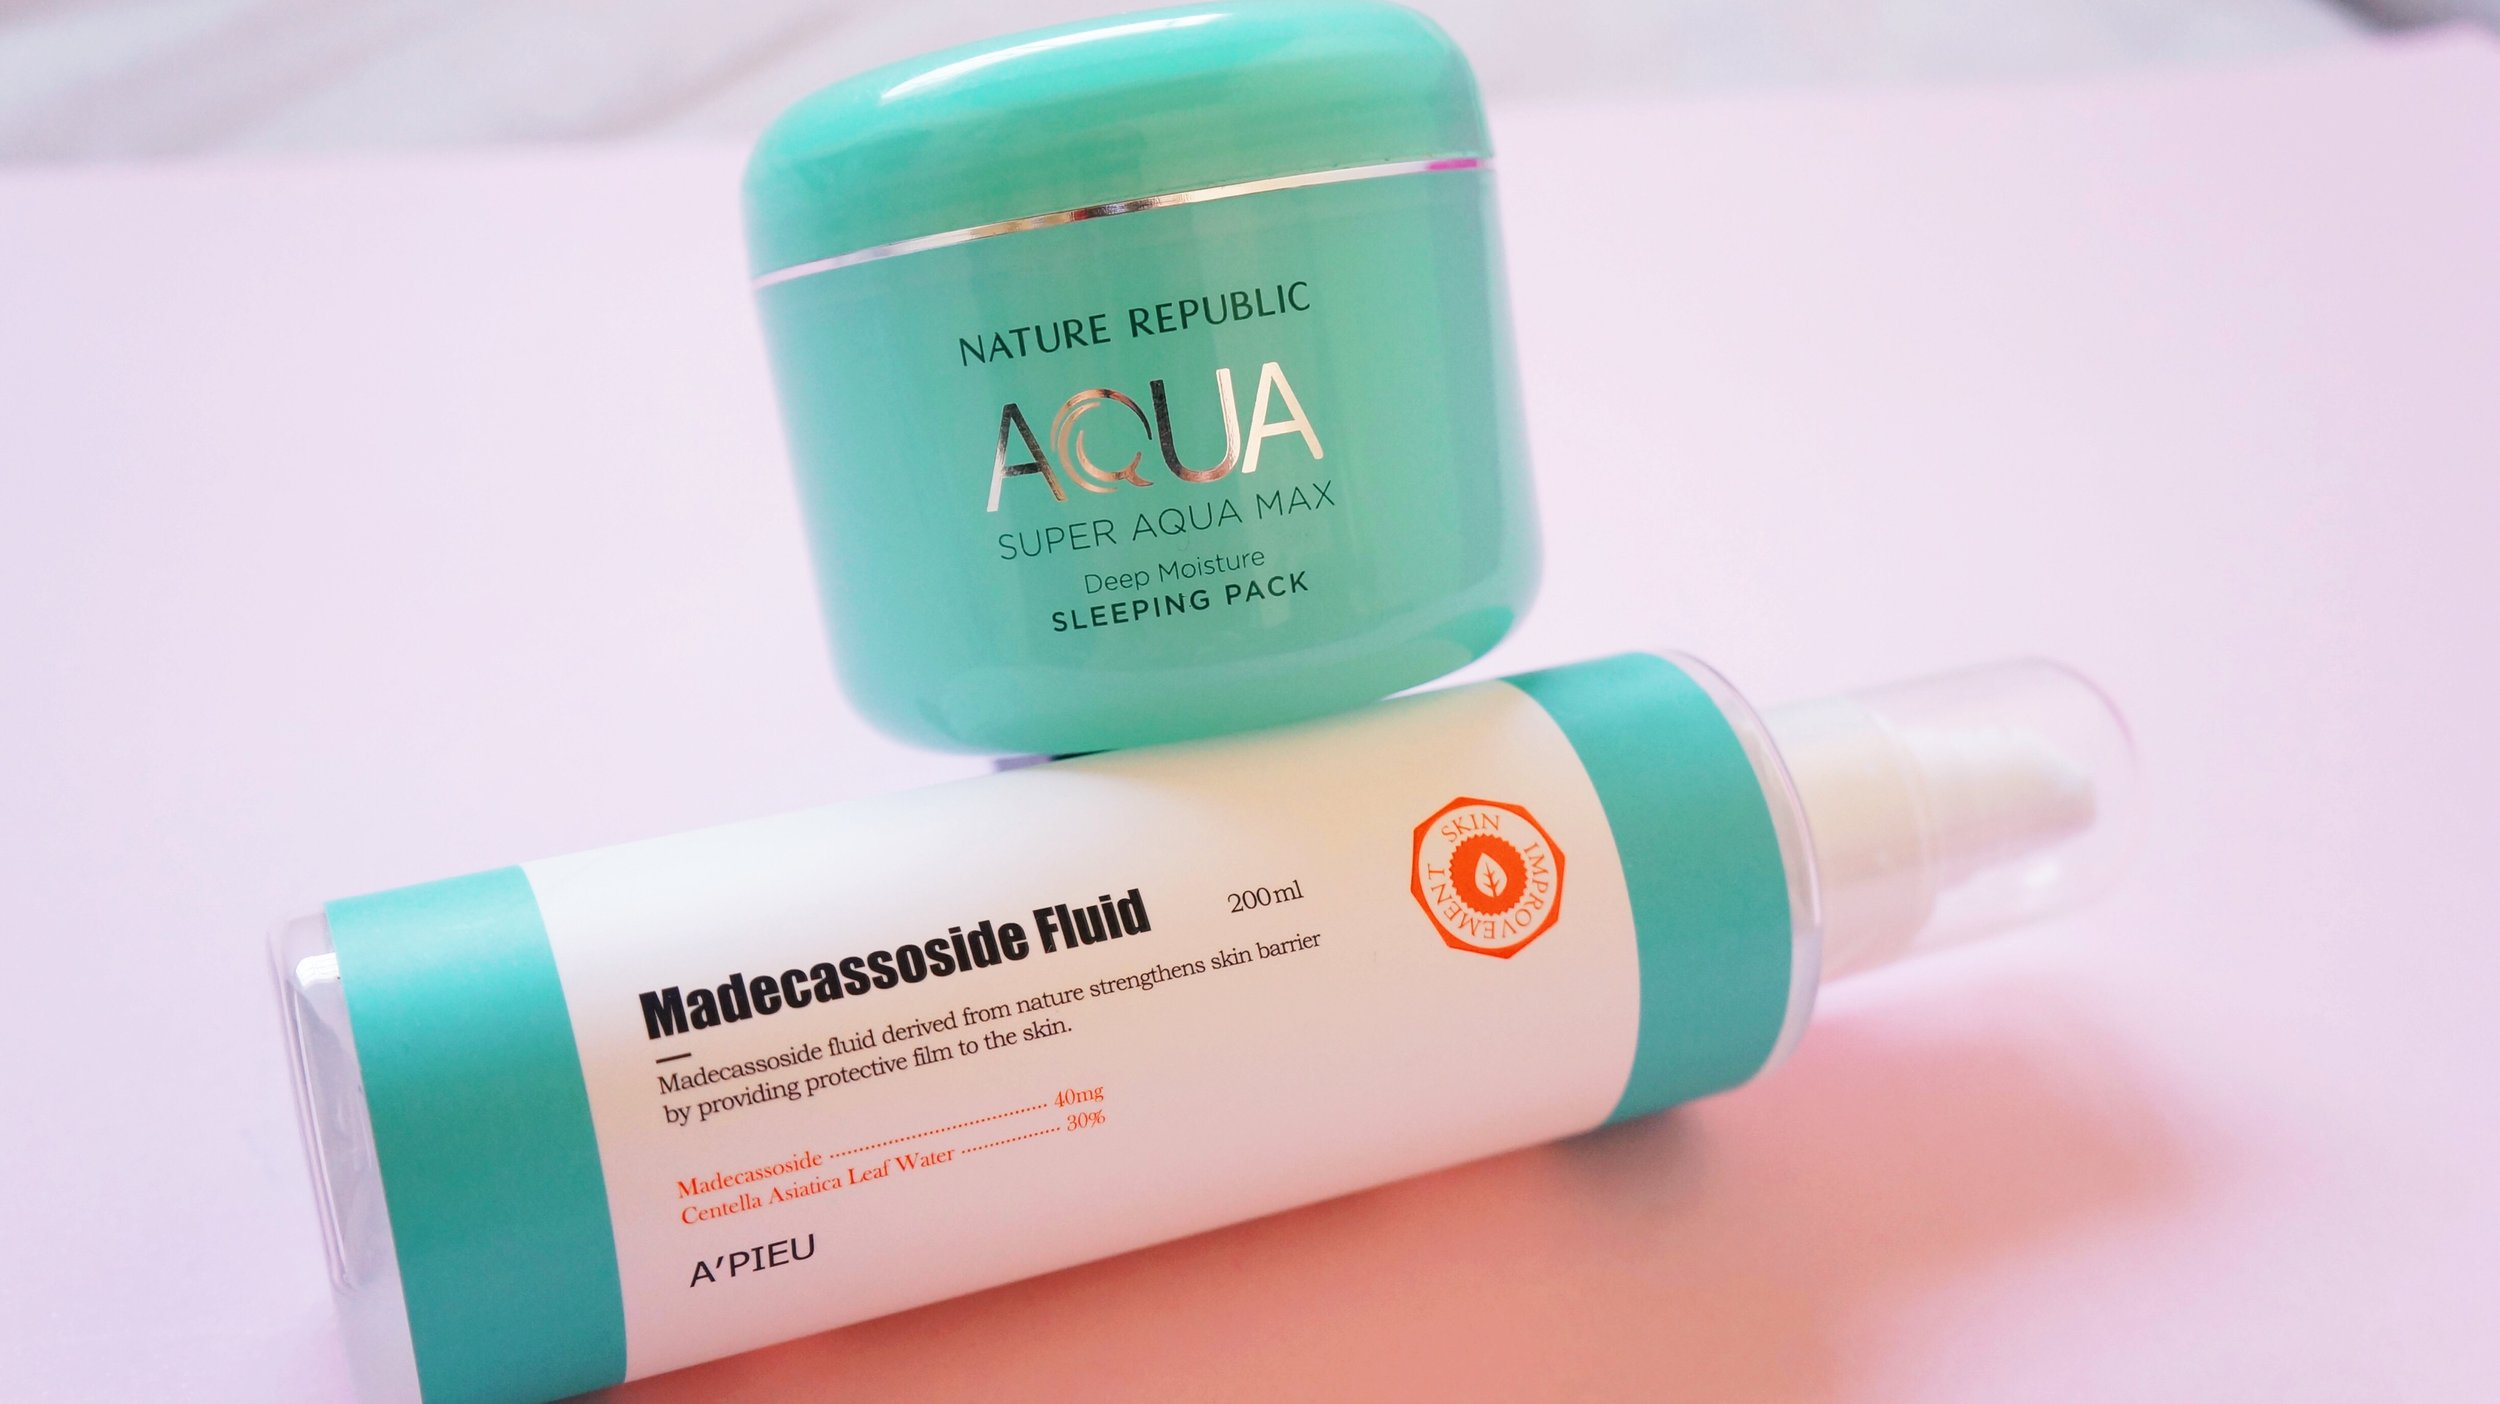 A´pieu: Madecassoside Fluid    ;    Nature Republic: Super Aqua Max Sleeping Pack